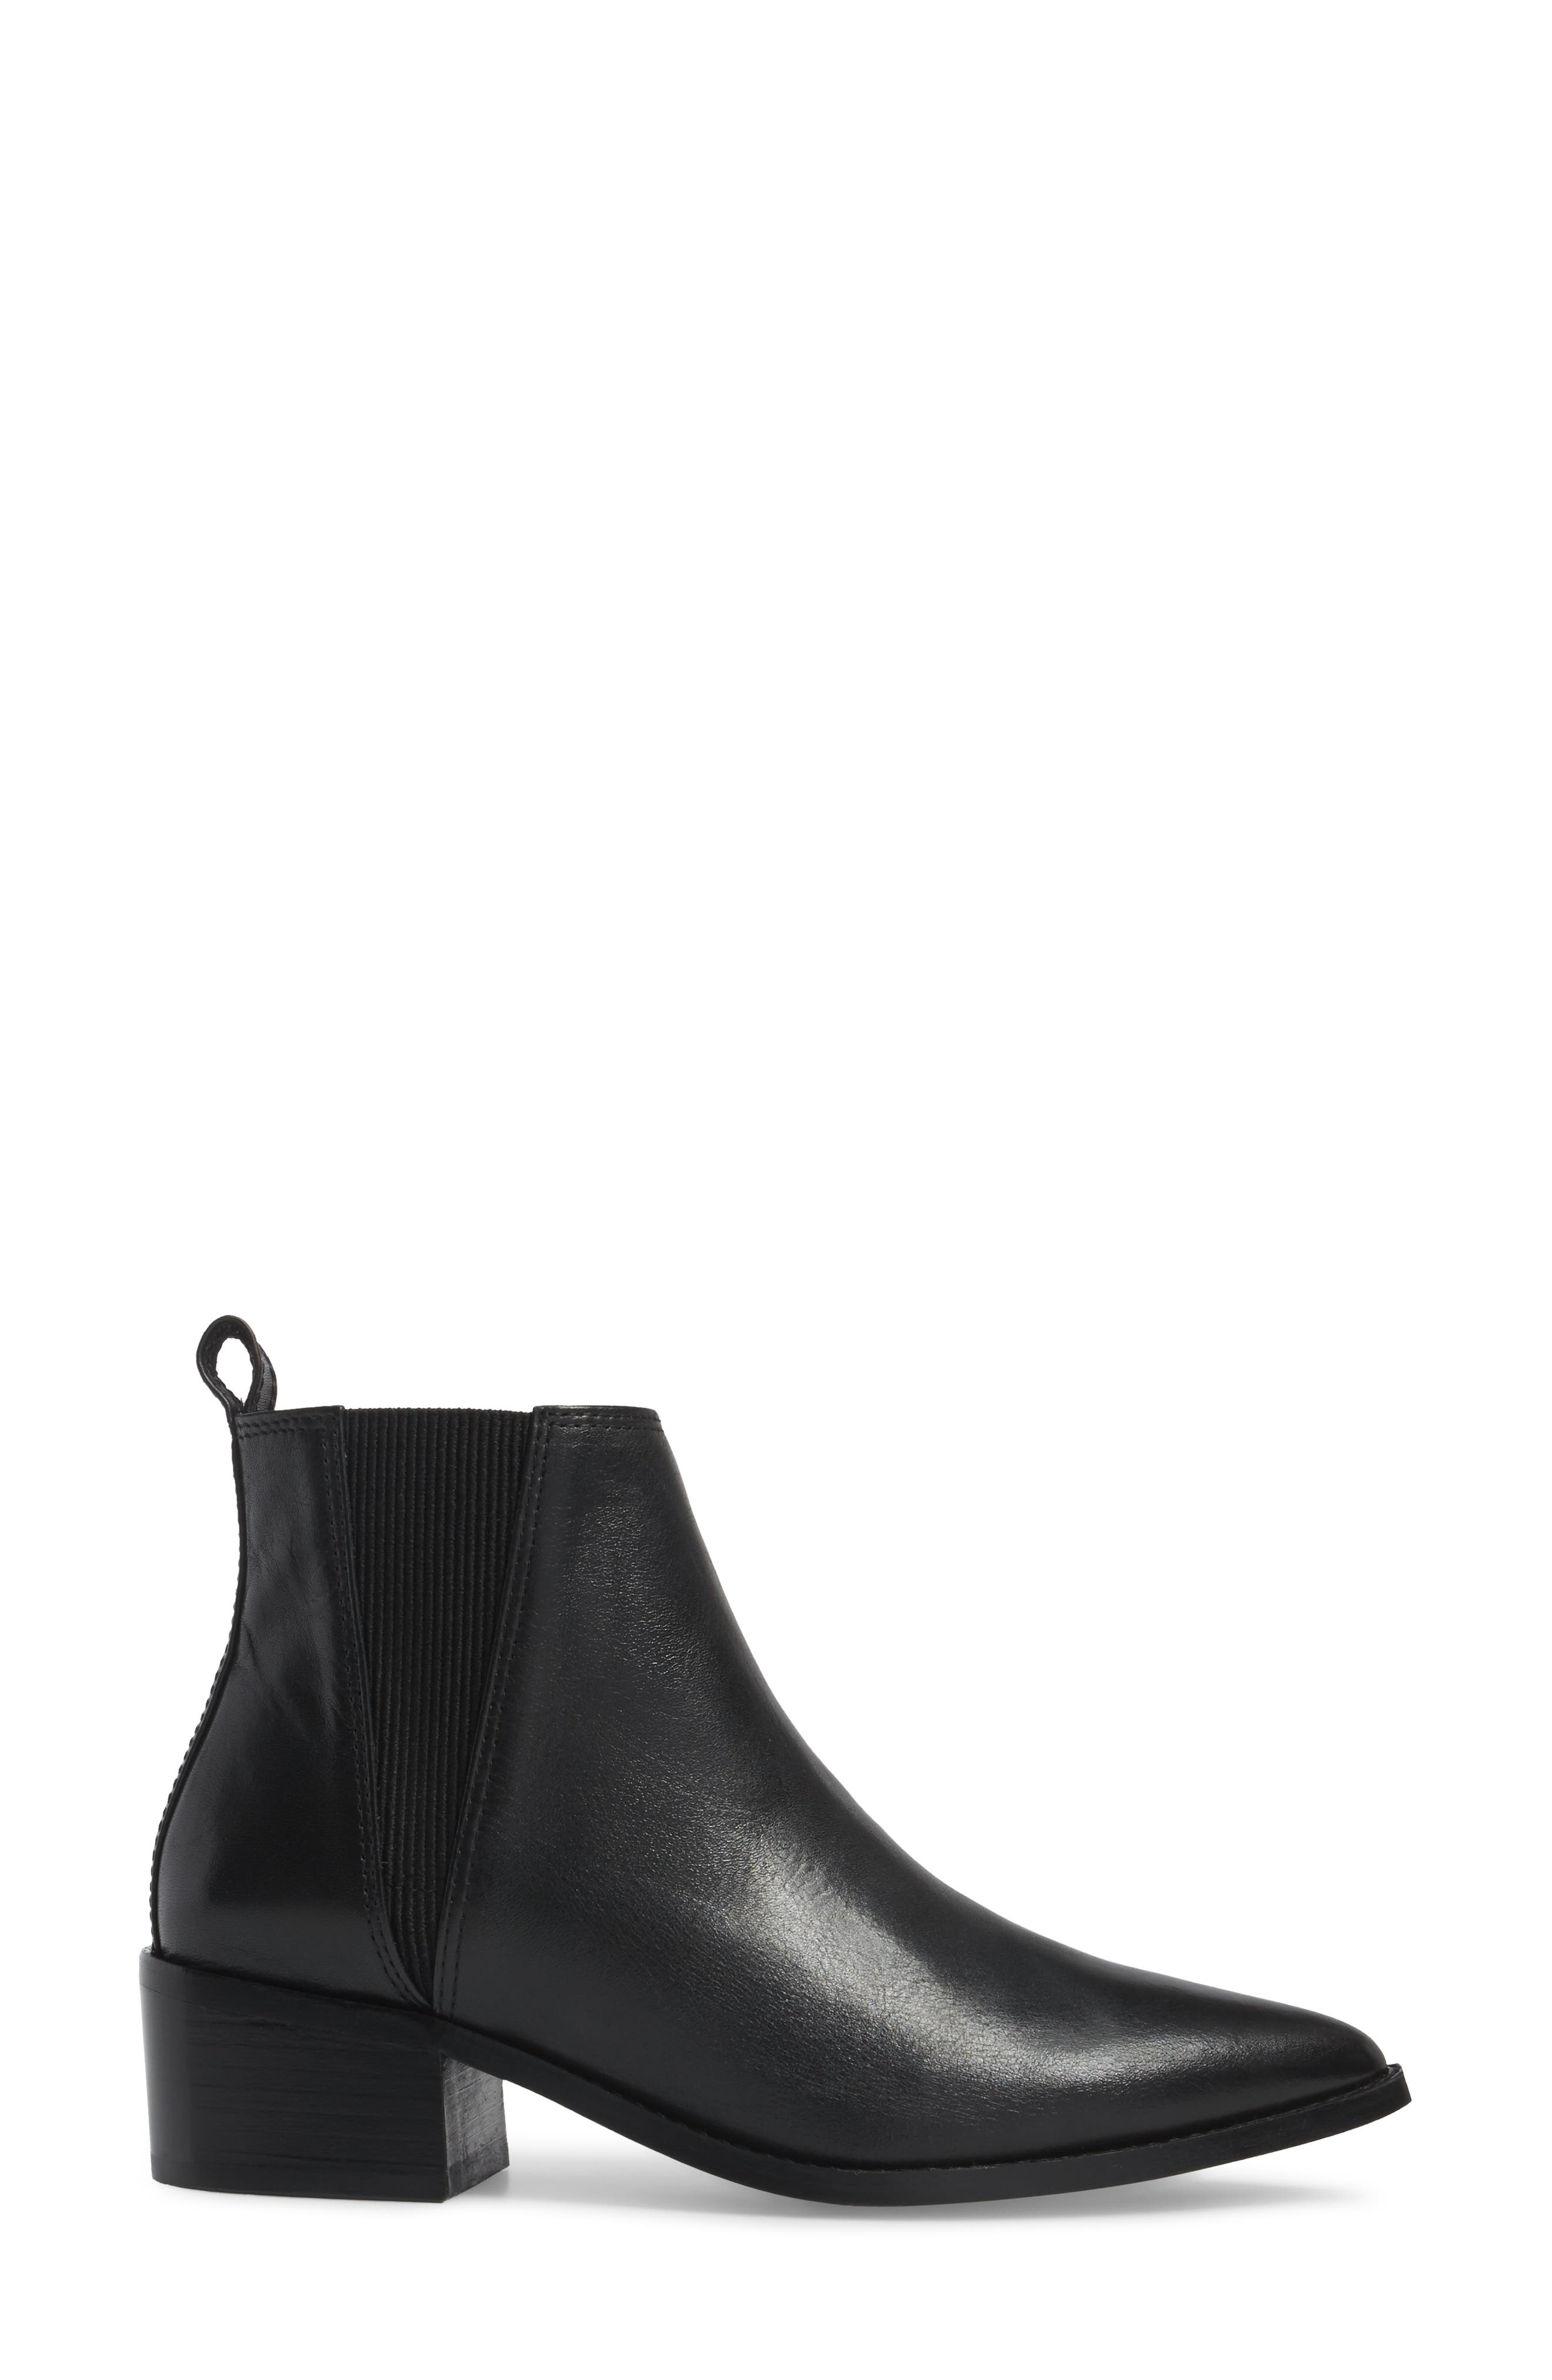 Ula Chelsea Bootie,                             Alternate thumbnail 3, color,                             Black